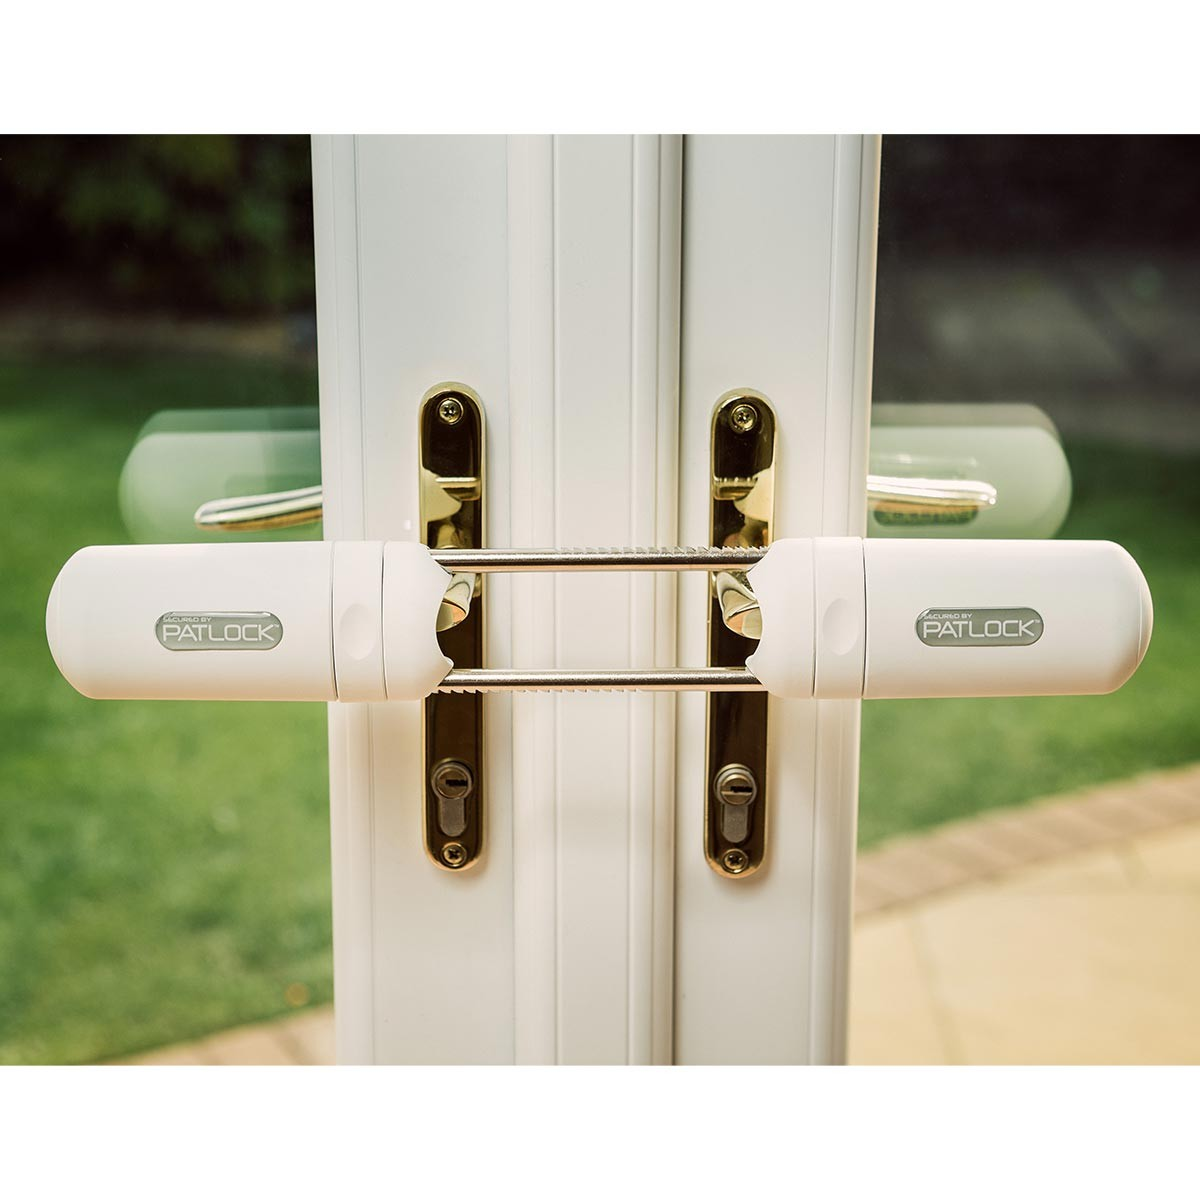 Owl Protect Patlock Robust Security Lock For Patio And French Doors Special Low Price,United Airlines Carry On Baggage Cost